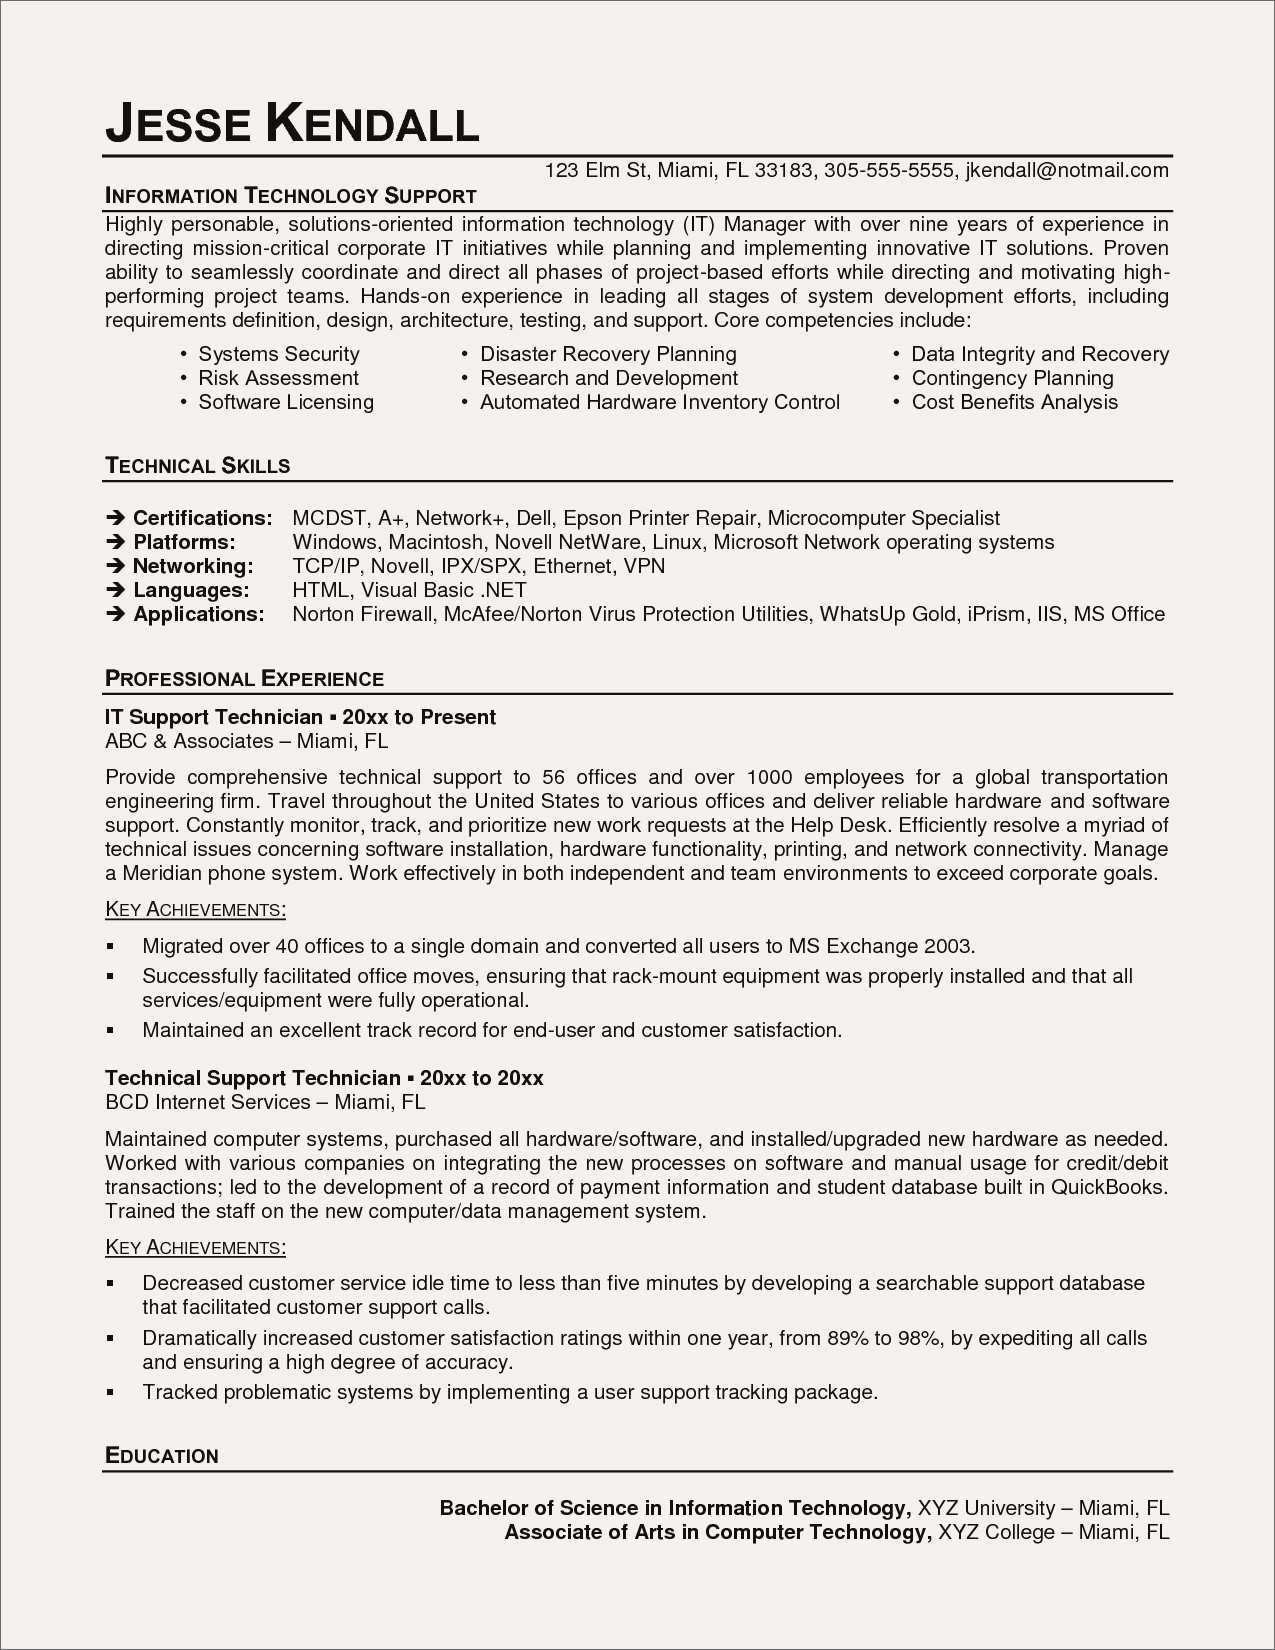 Computer Technician Resume Template - Technician Resume Examples New Auto Mechanic Resume American Resume